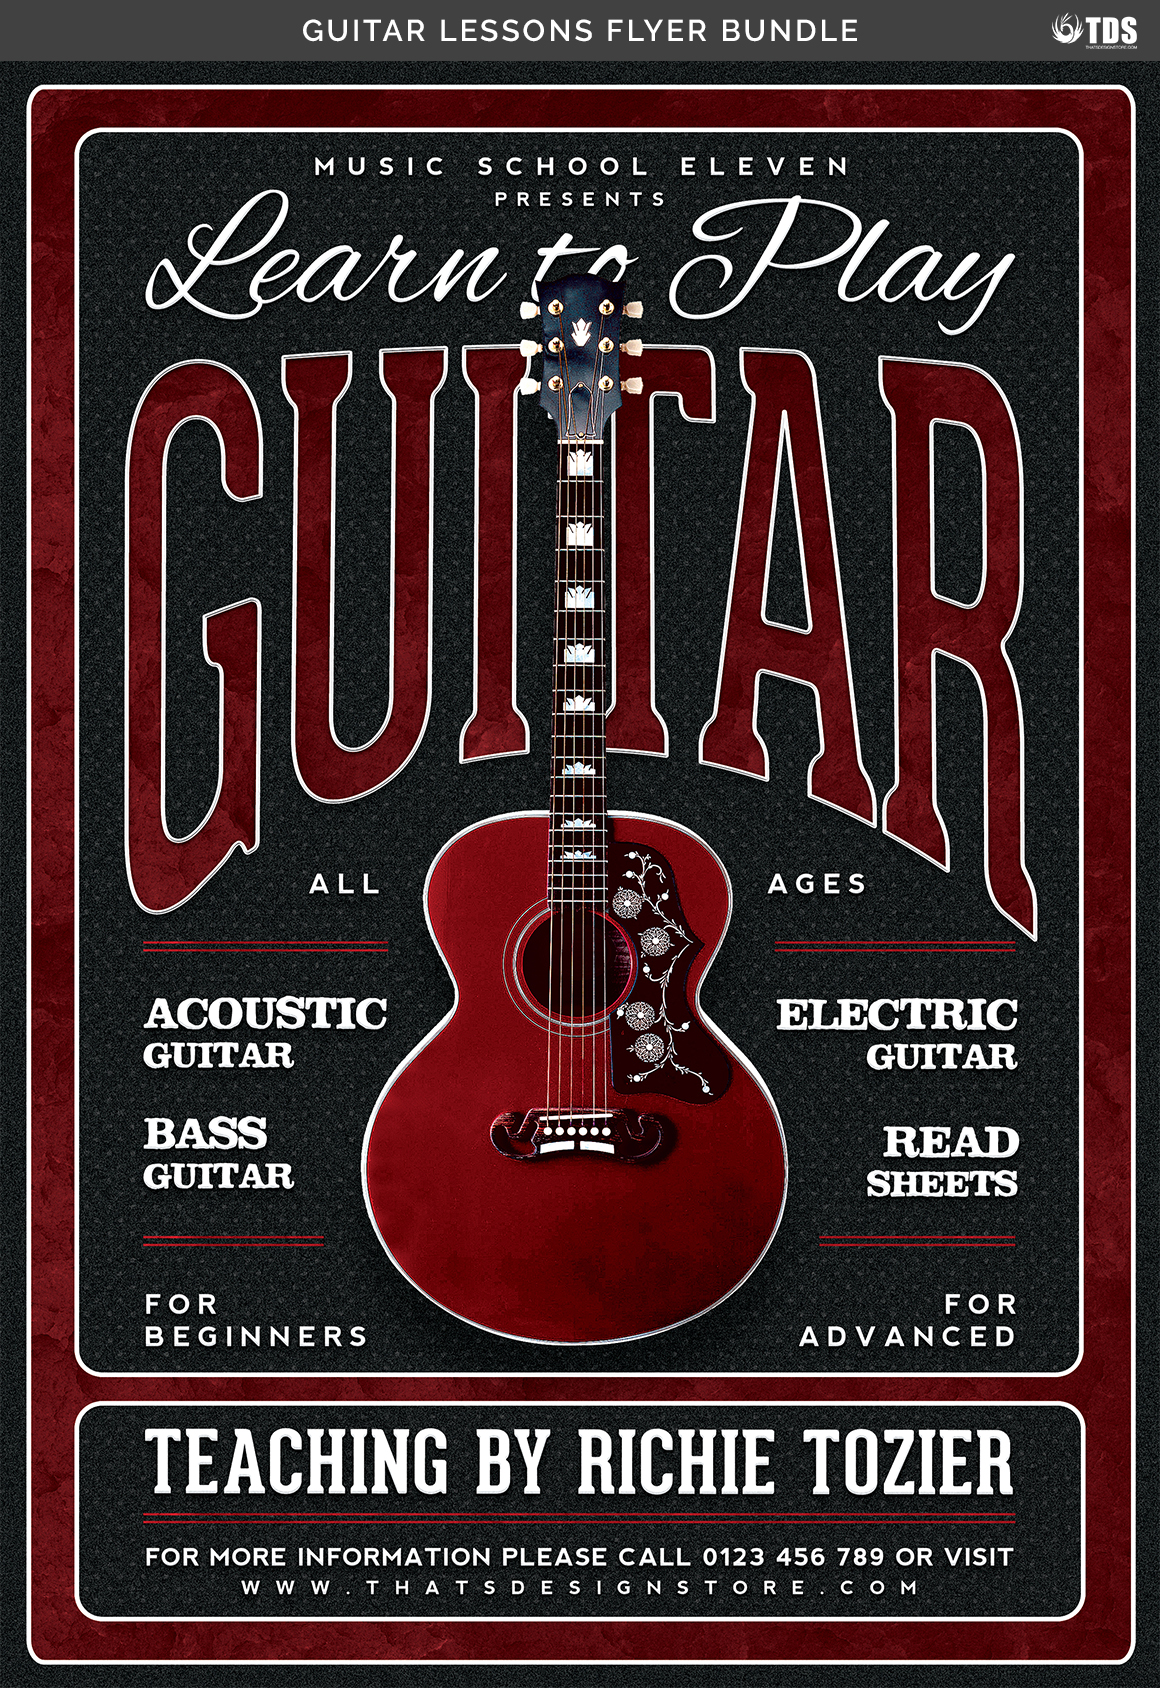 Guitar Lessons Flyer Bundle example image 13